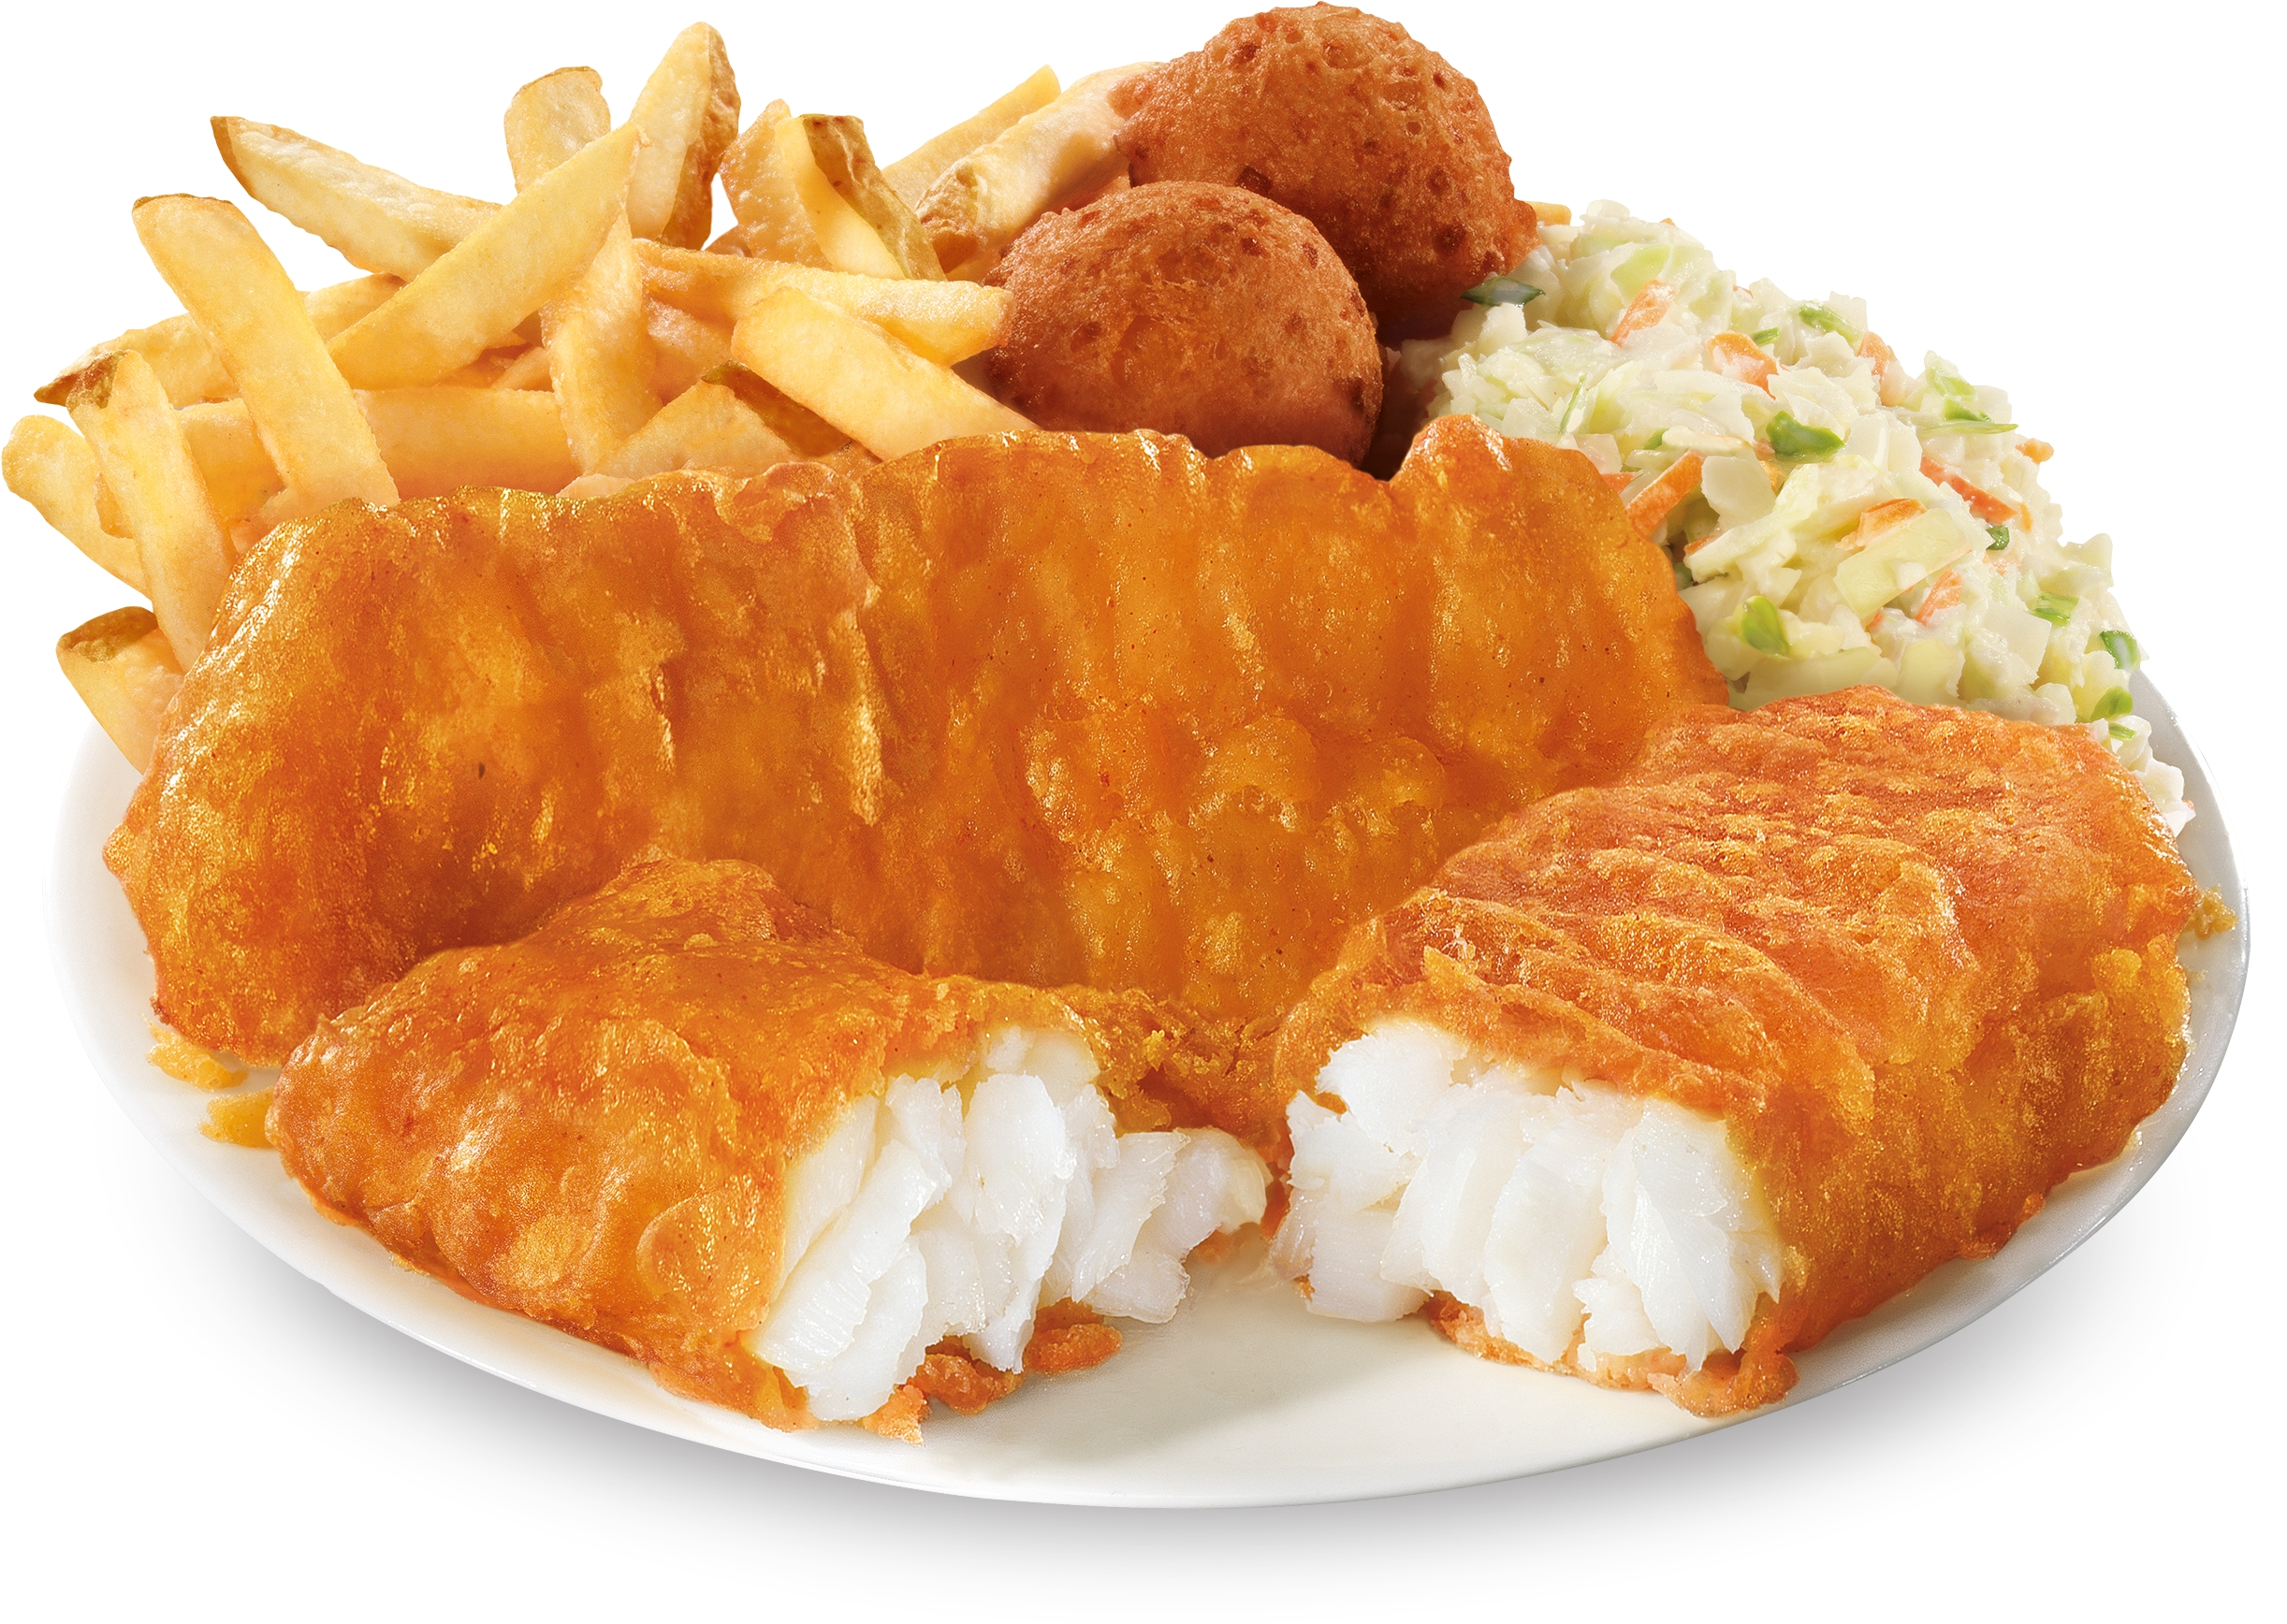 Long john silver s rocks the boat with beer battered for Long john silvers fish batter